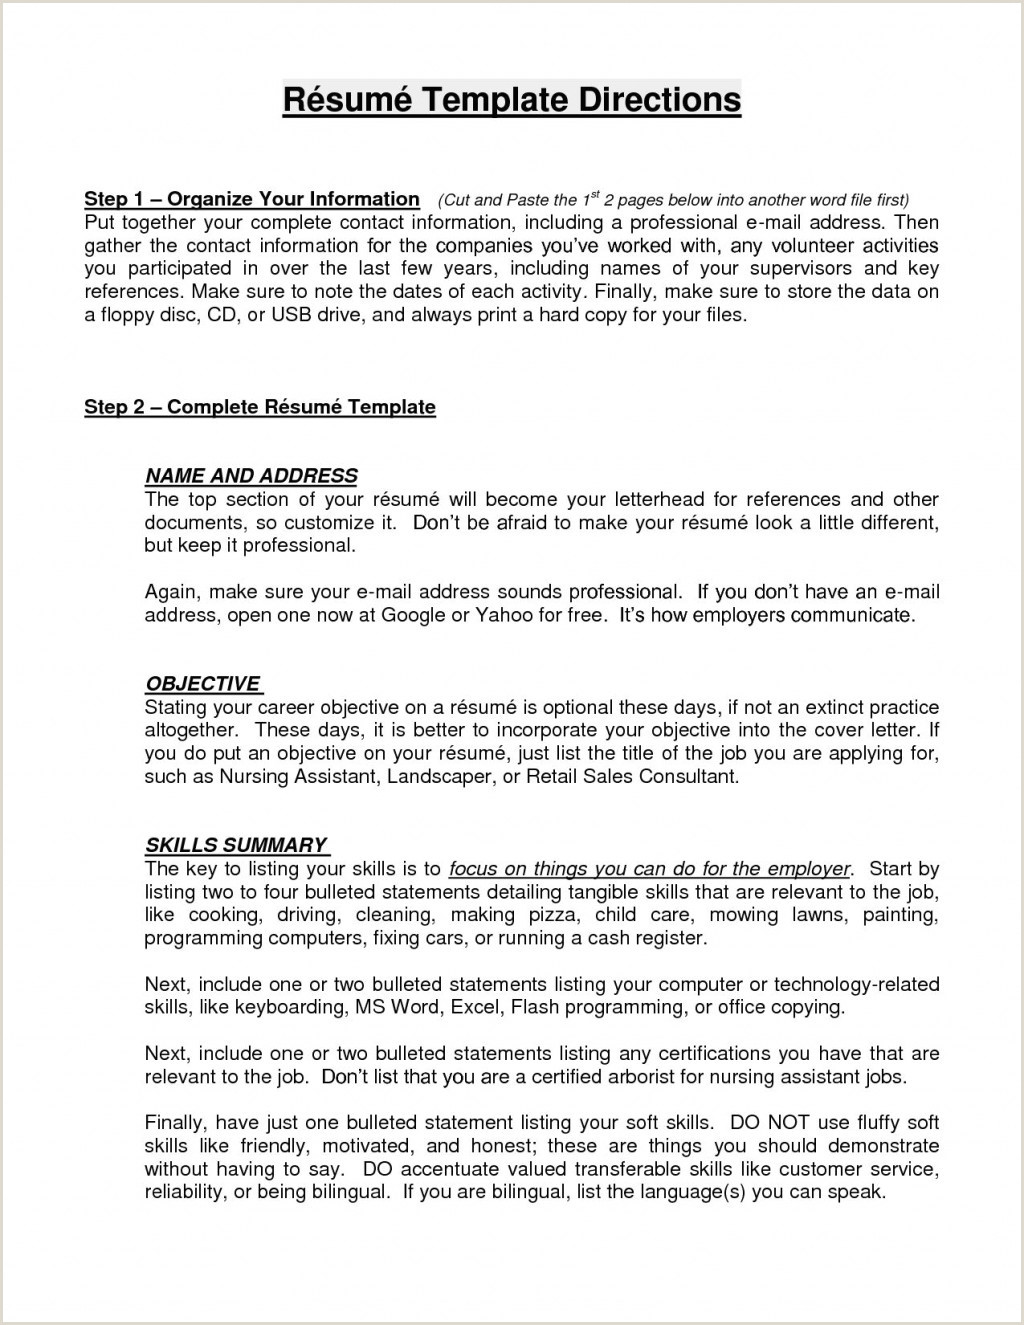 022 Goals General Resume Objective Examples Resumes